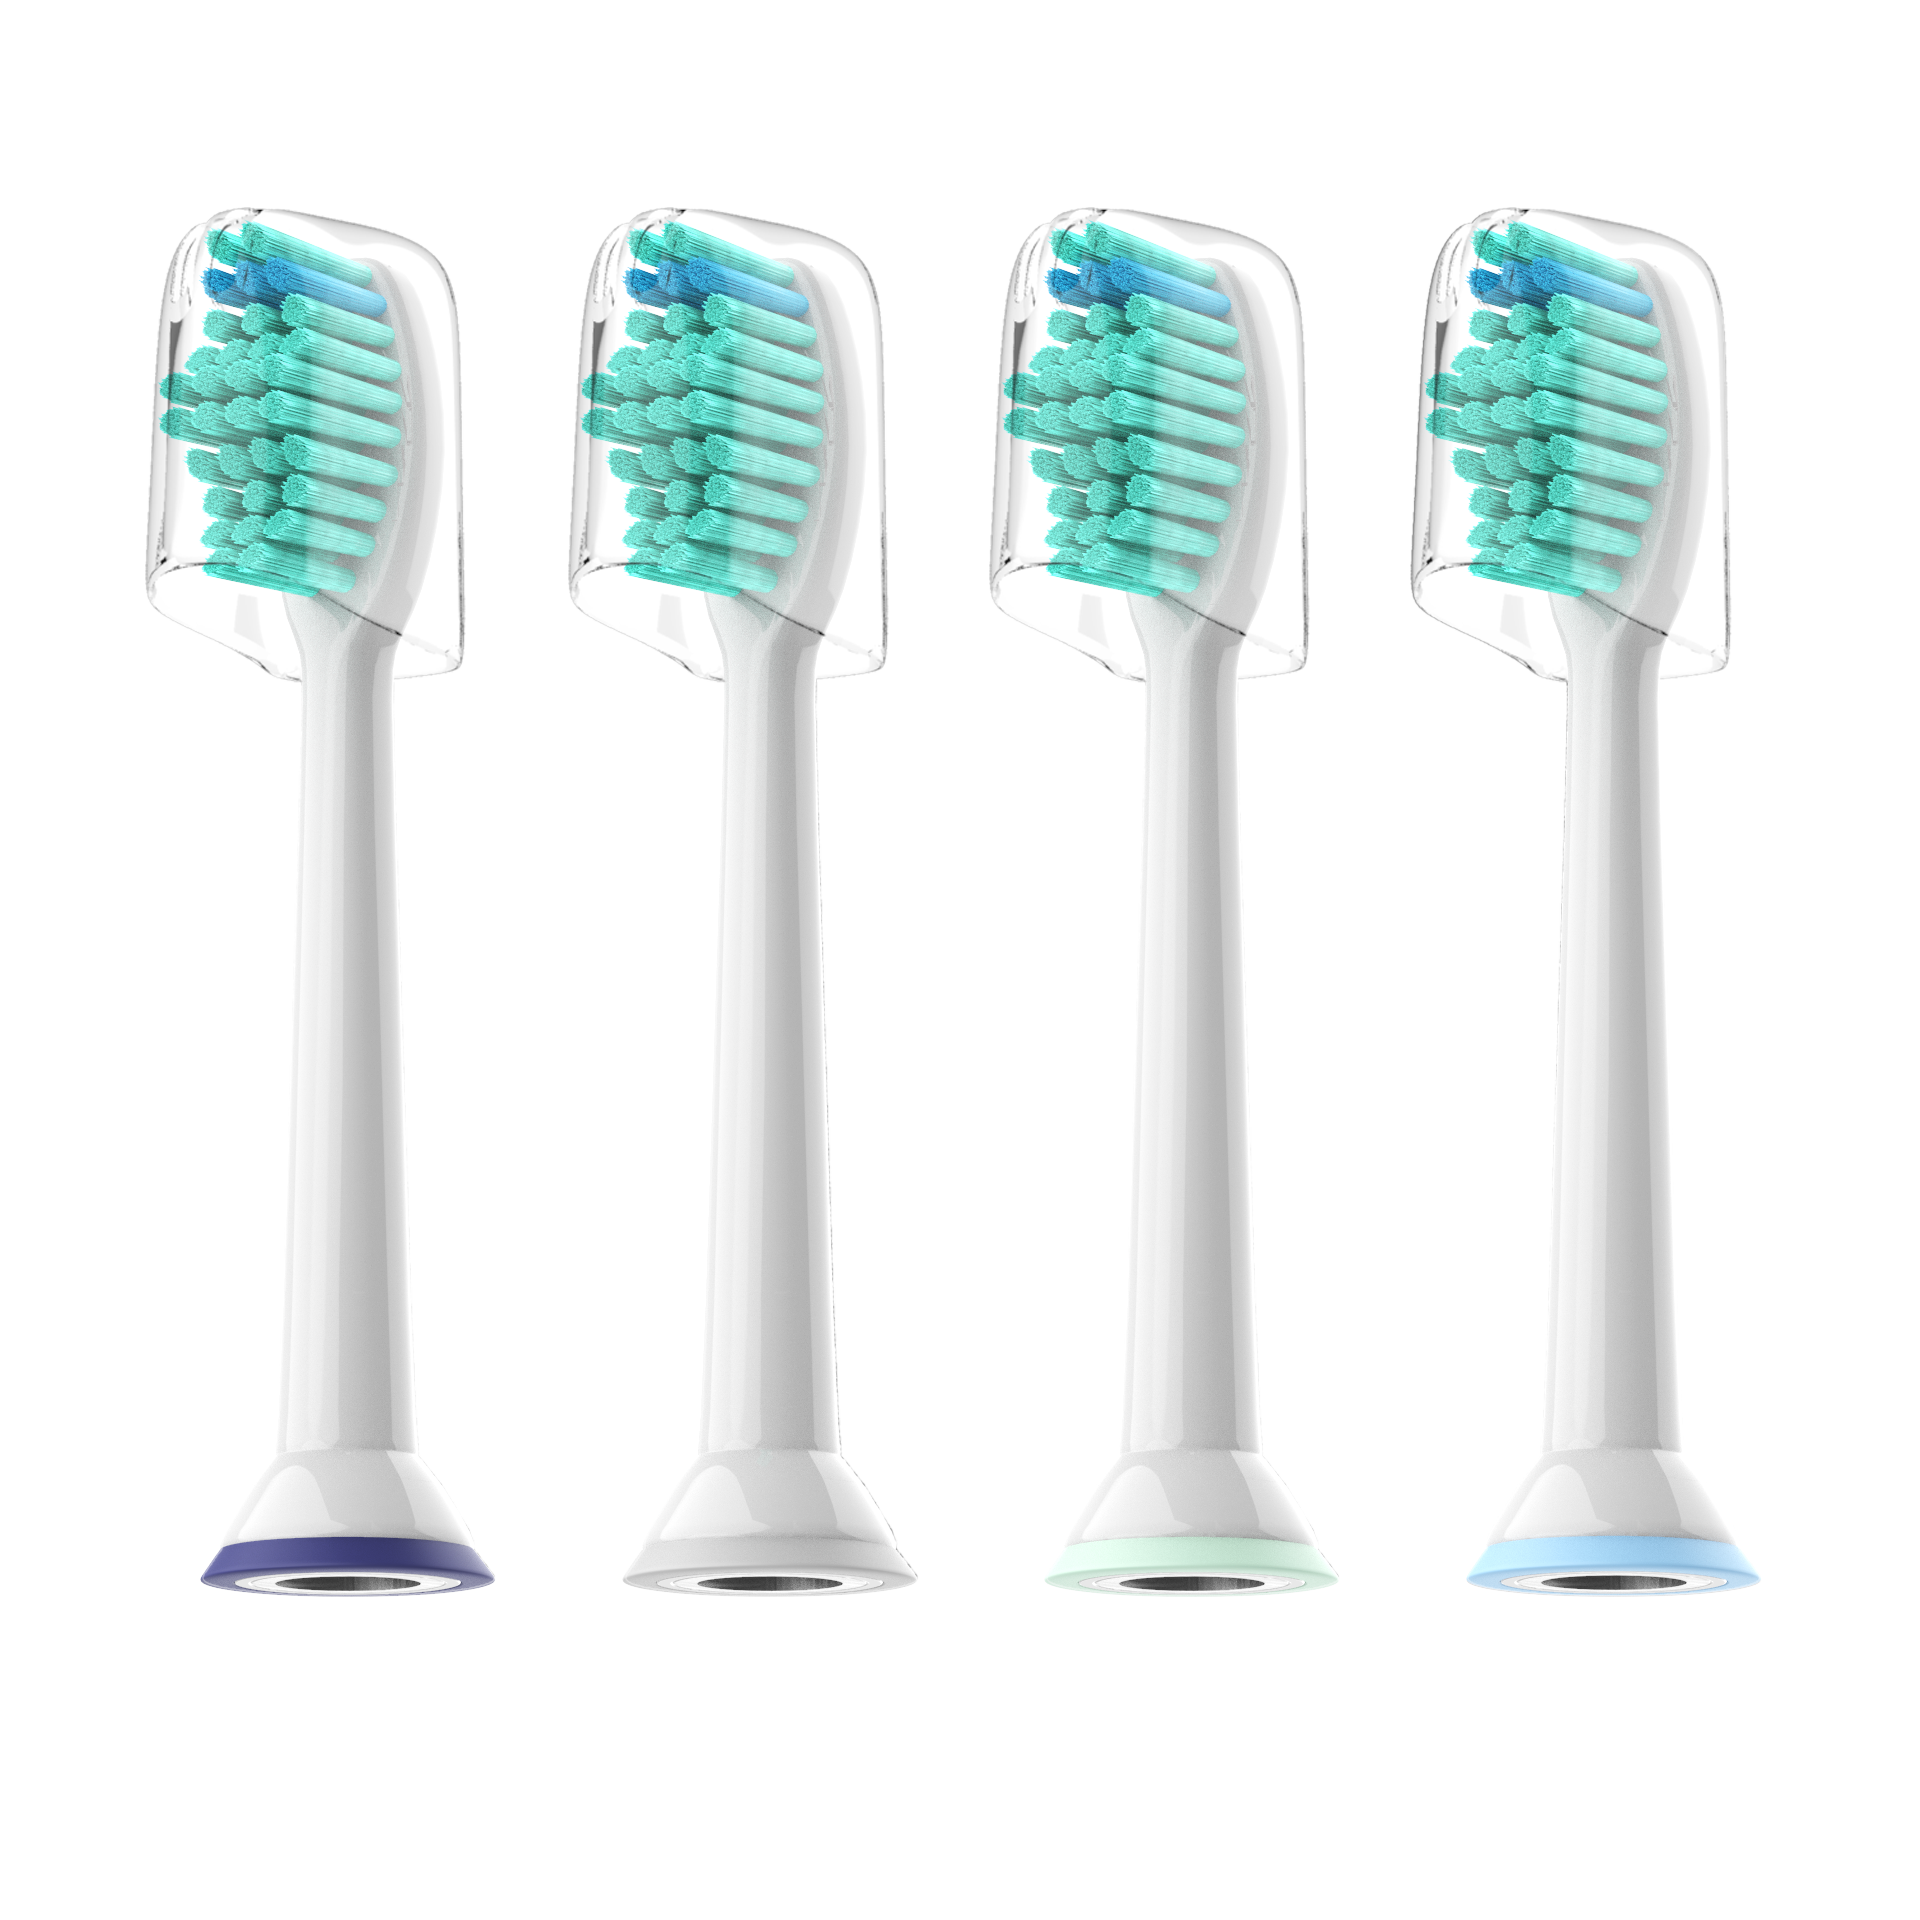 4pcs/lot Replacement Toothbrush Heads with cap for Philips Sonicare HX6530 HX9340 HX6930 HX6710 HX9140 HX6921 HX6930 HX6932 image